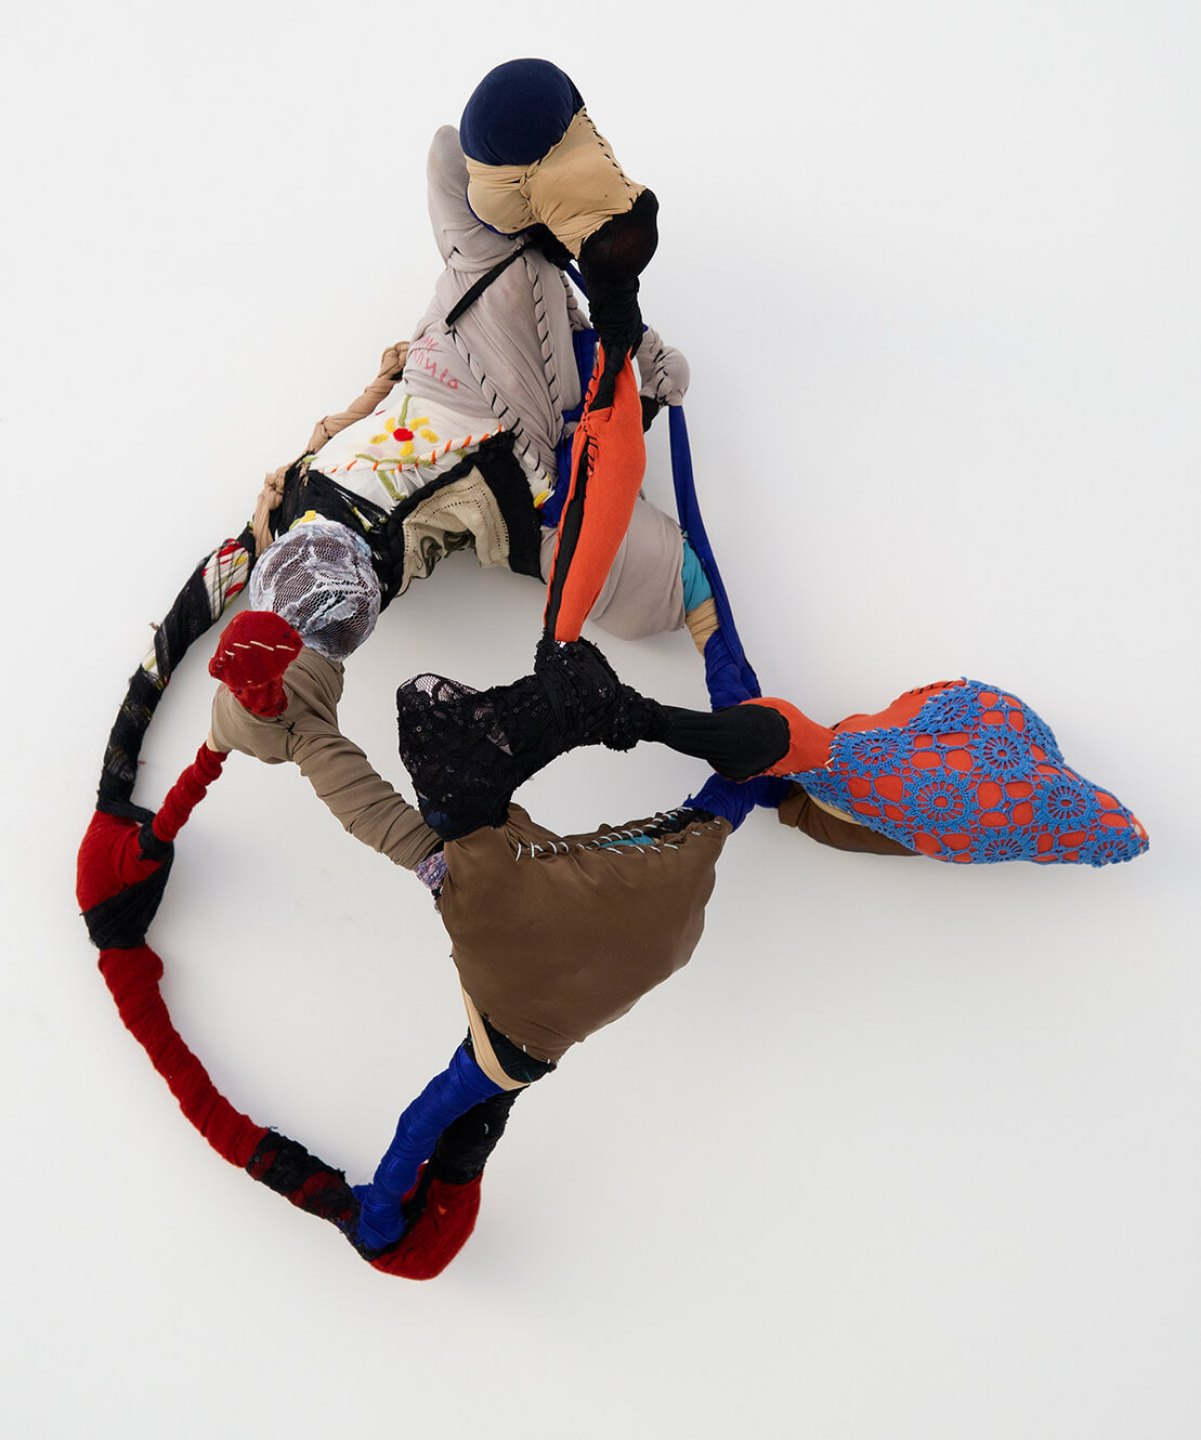 Sonia Gomes,<em>Afrânio</em>, 2014, stitching, moorings and different fabrics and laces on wire and steel, 45 × 90 × 30 cm - Mendes Wood DM